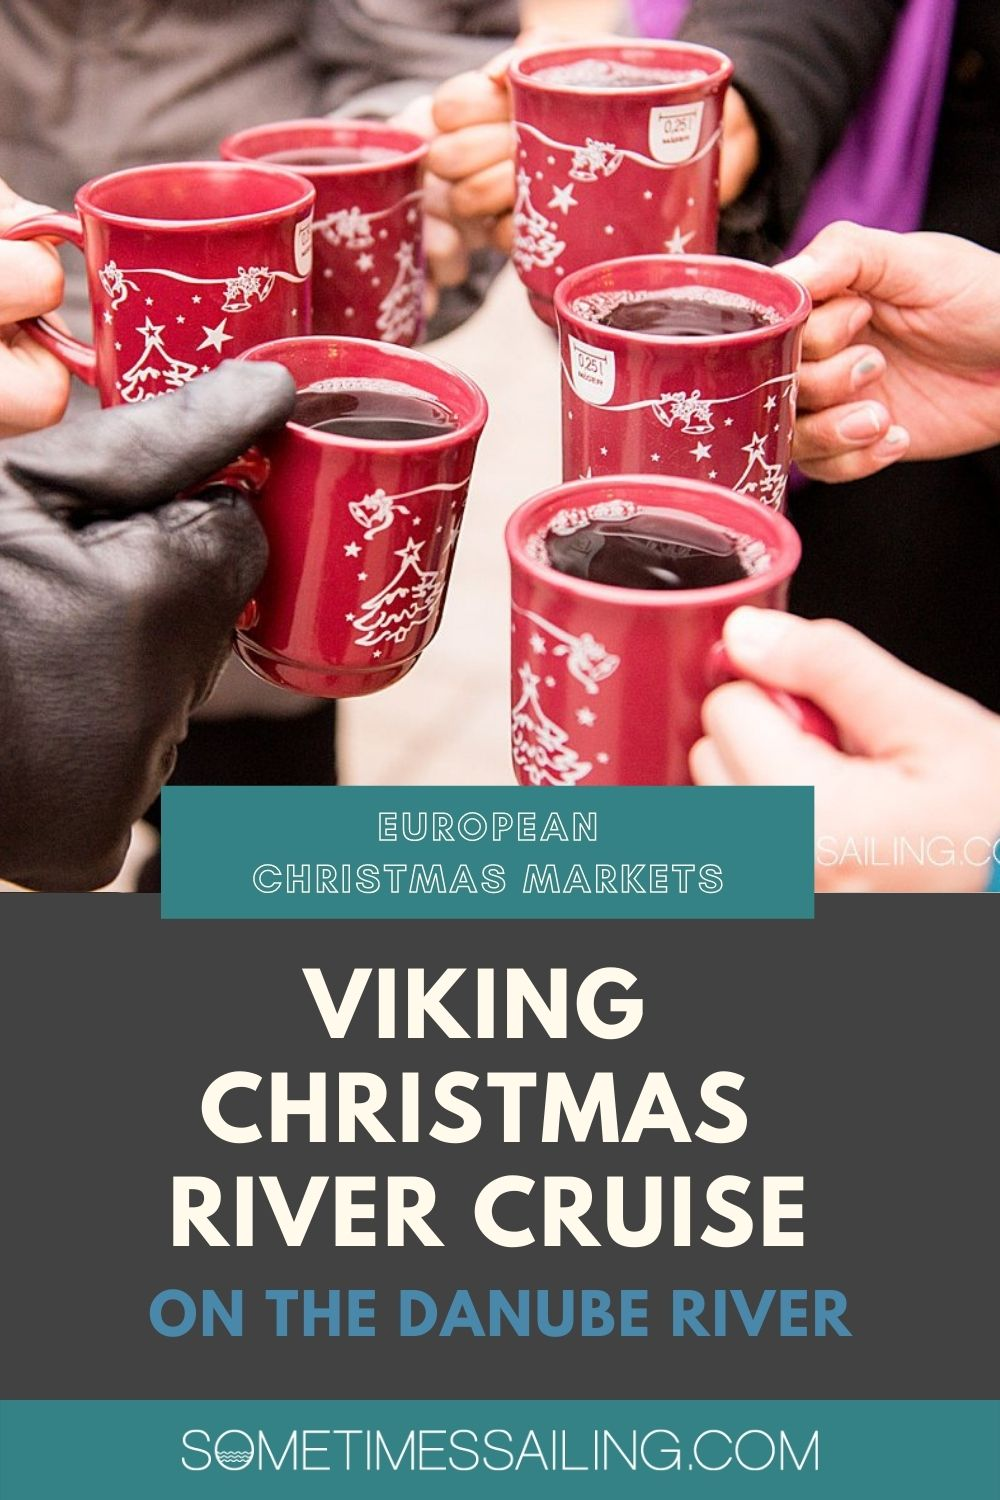 Pin for a Viking Christmas River Cruise with hand holding red mugs filled with red wine.